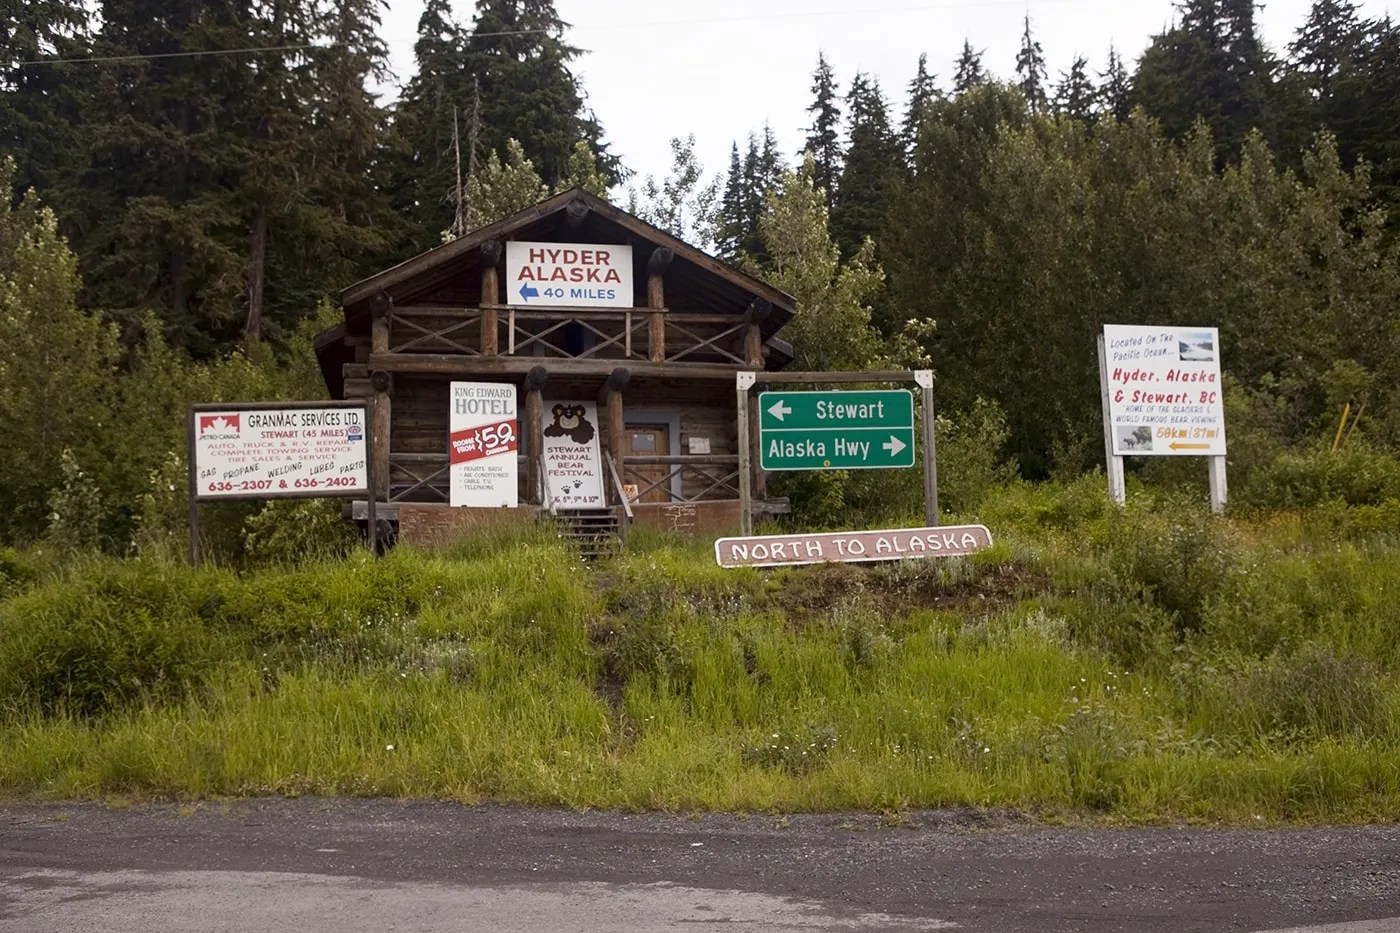 Road Trip Planner Canada >> How to Get to Hyder, Alaska on a Road Trip - Silly America